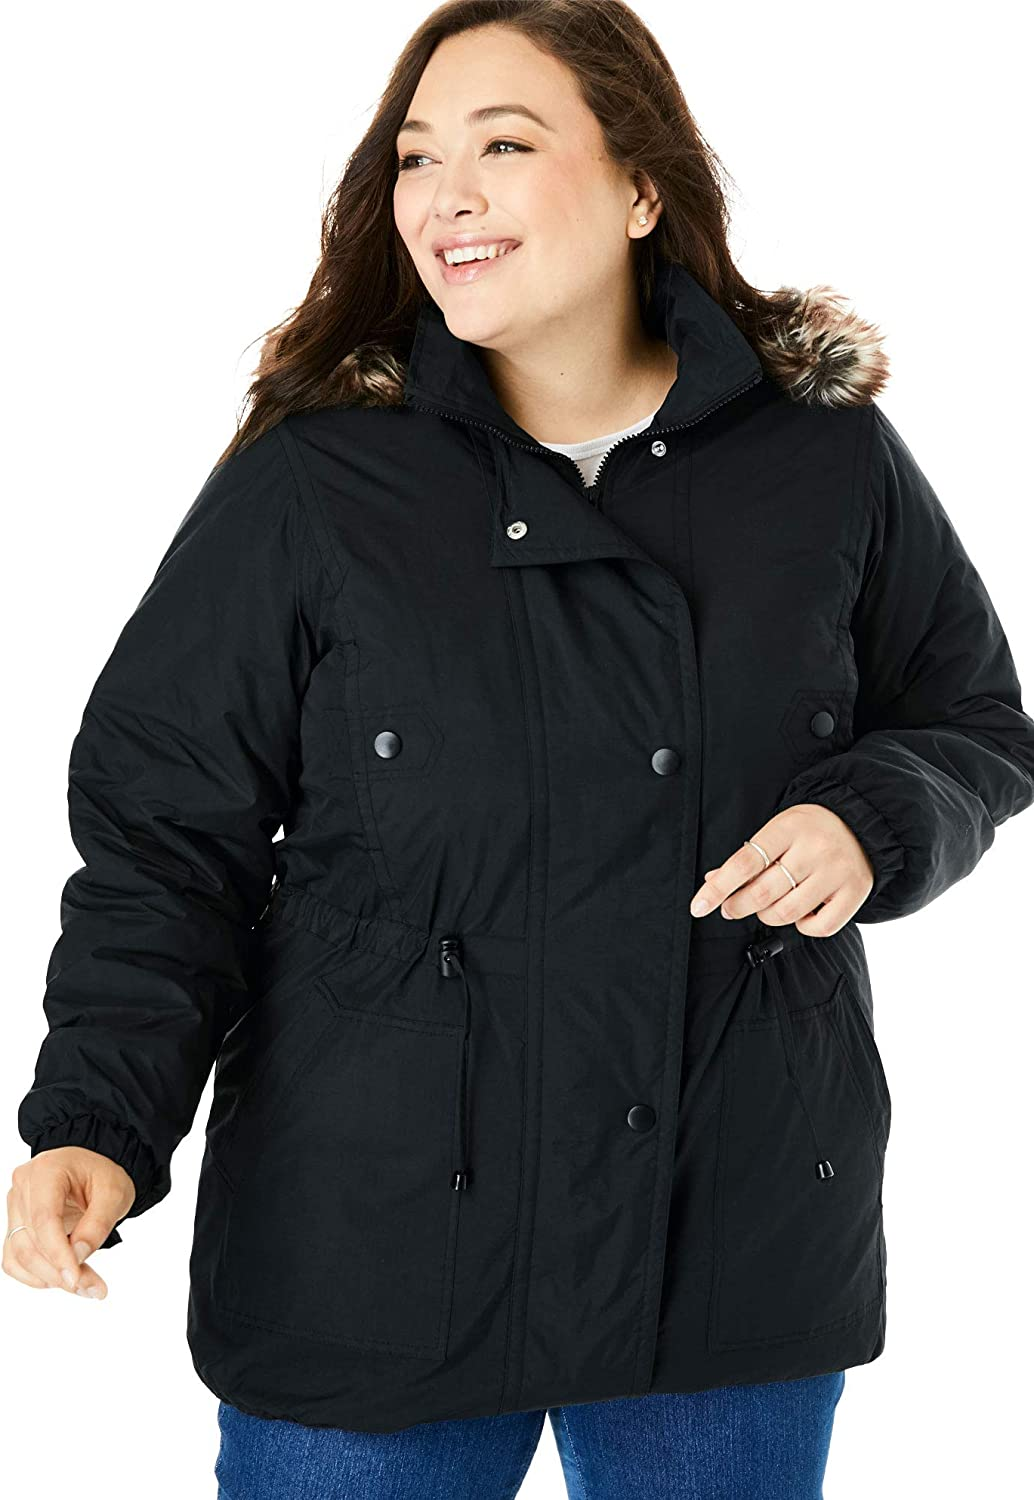 Woman Within Women's Plus Size Quilt-Lined Taslon Anorak